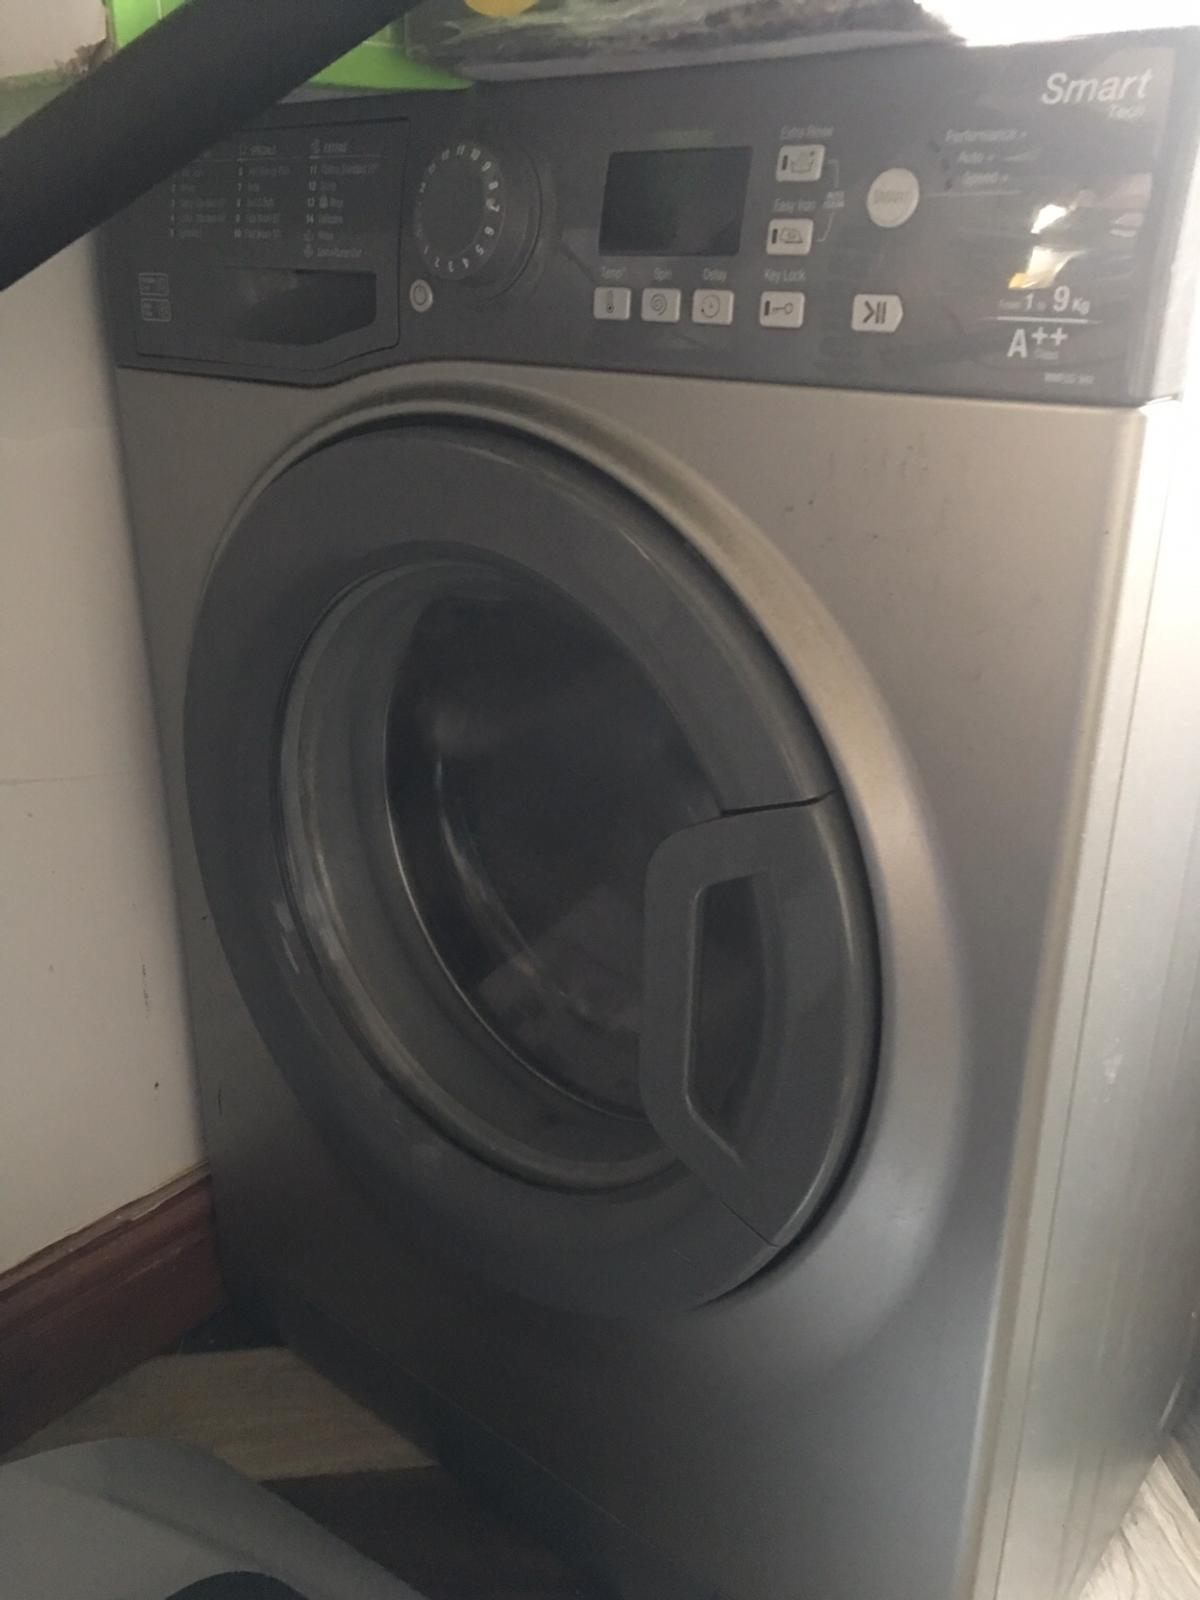 Used Hotpoint washing machine 9kg triple AAA in Bolton for £140 00